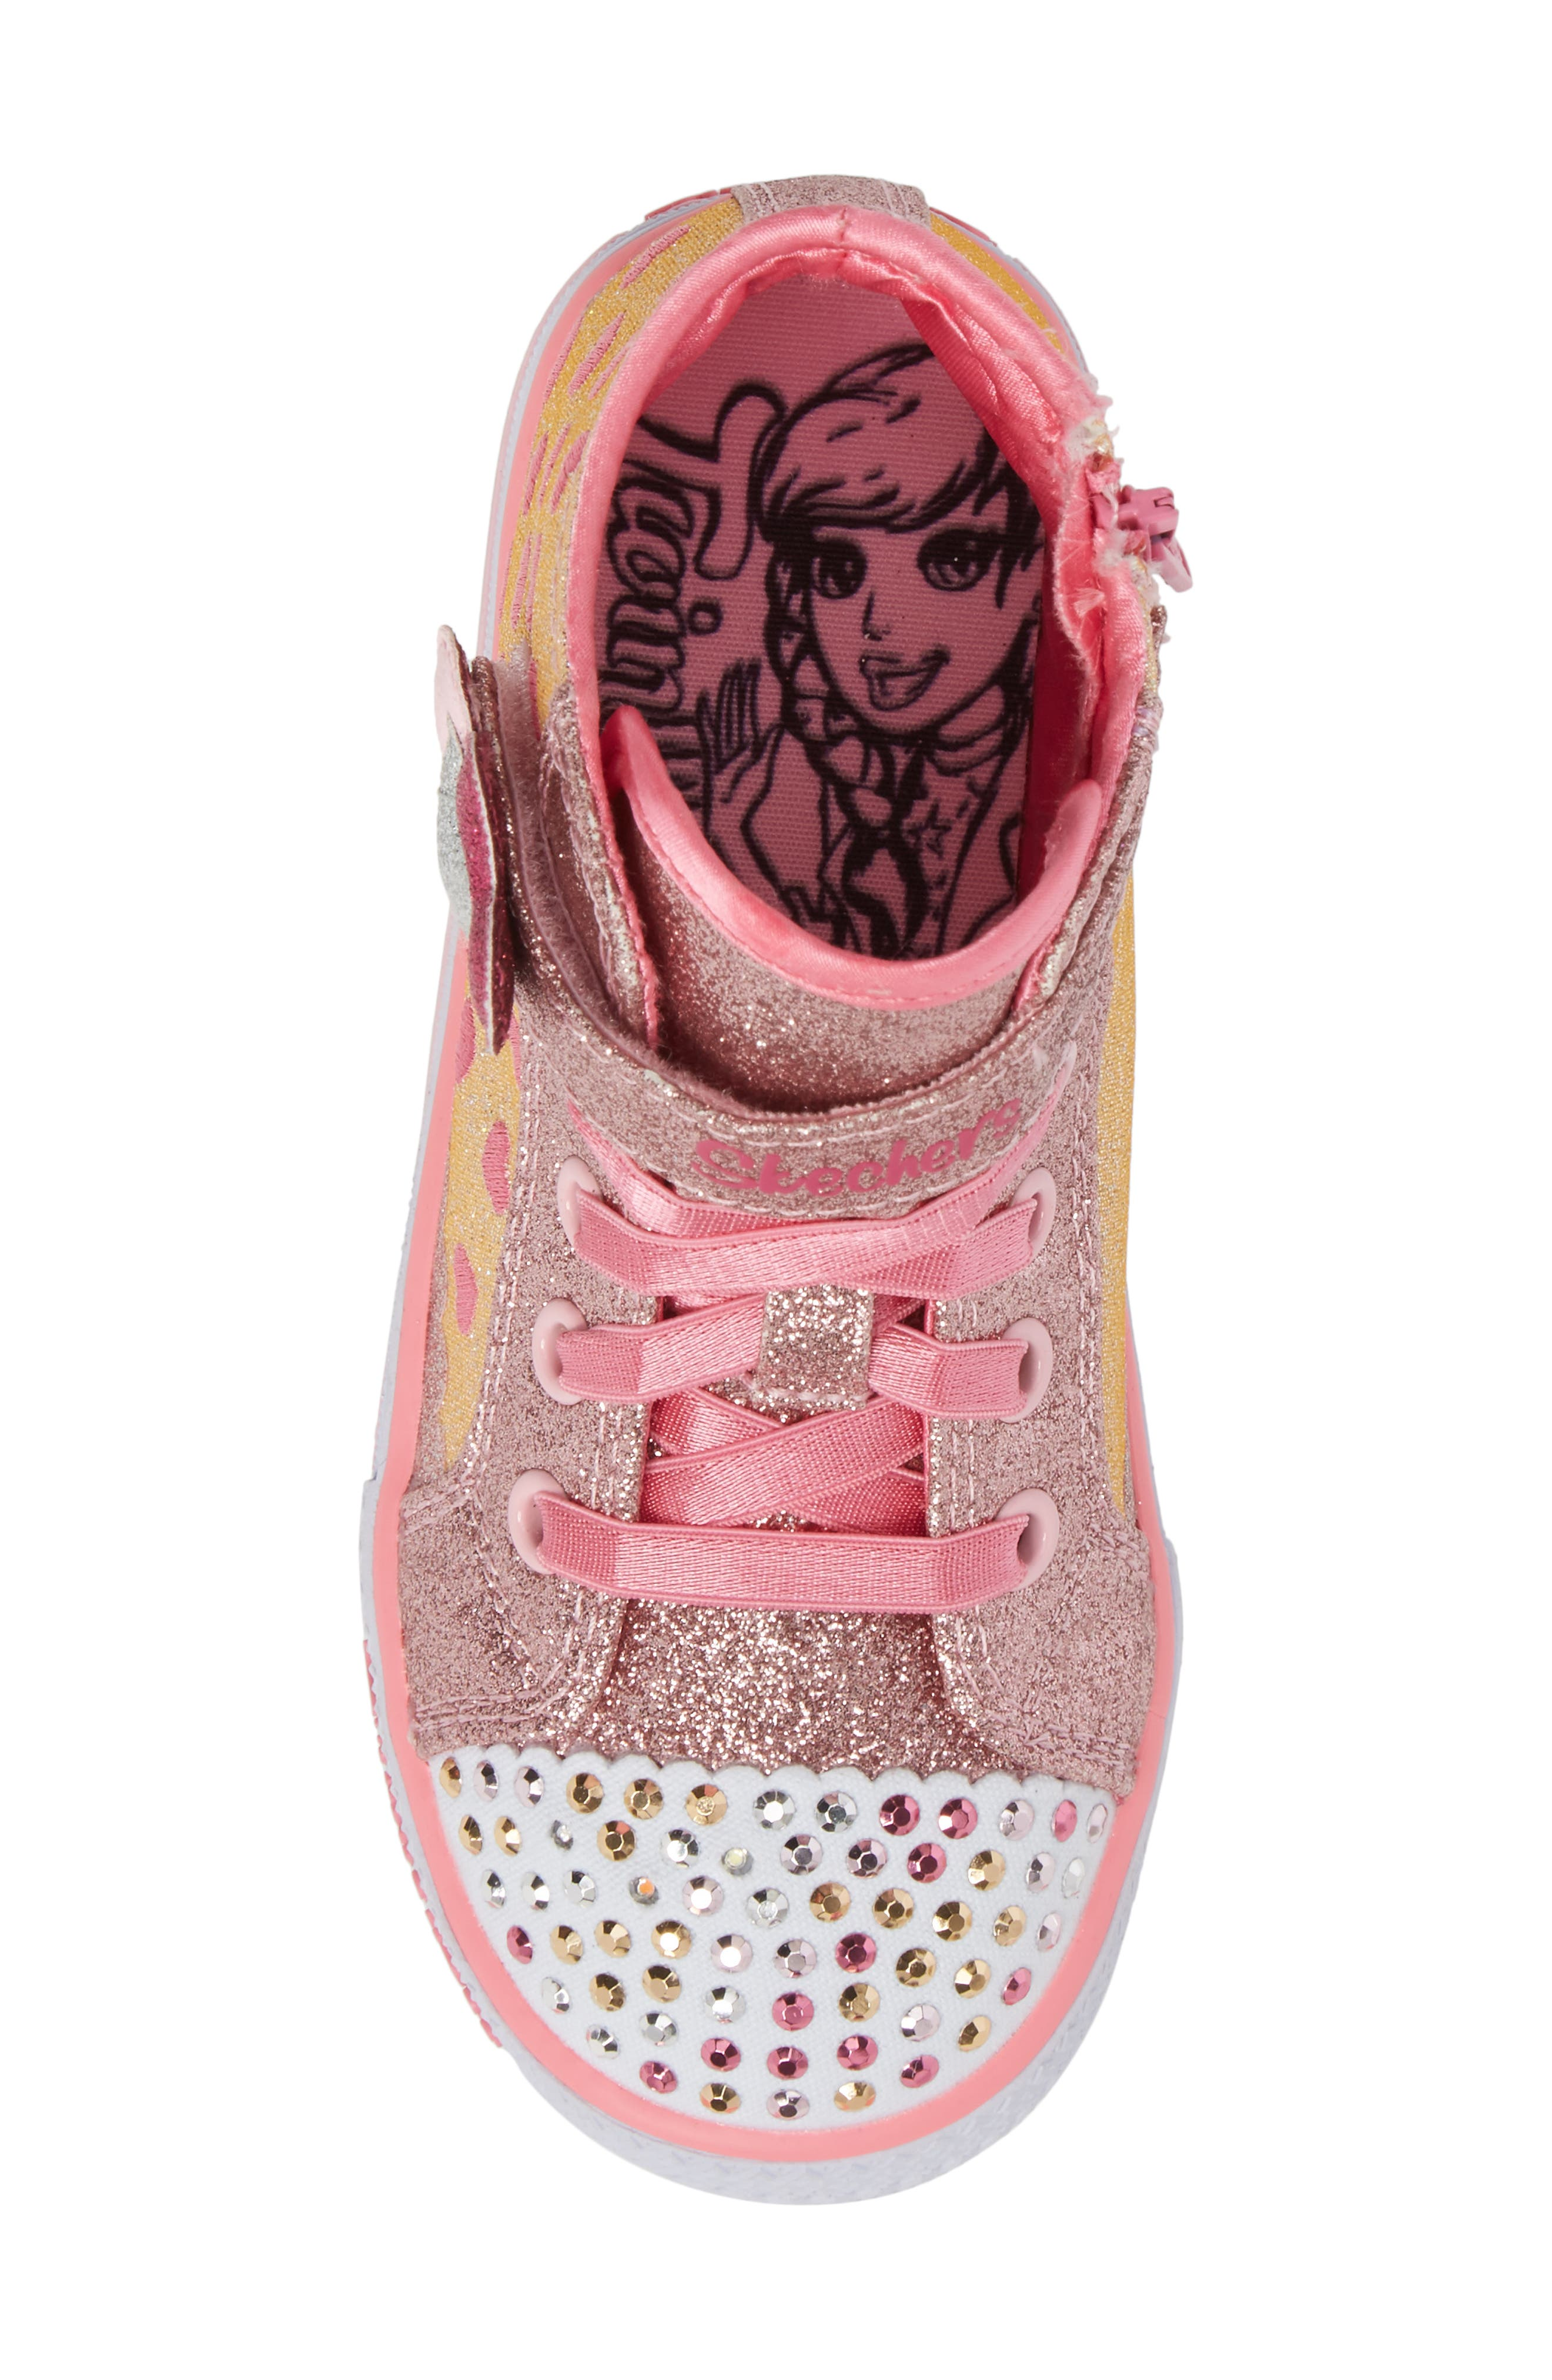 Twinkle Toes - Shuffles High Top Sneaker,                             Alternate thumbnail 5, color,                             Pink/ Hot Pink